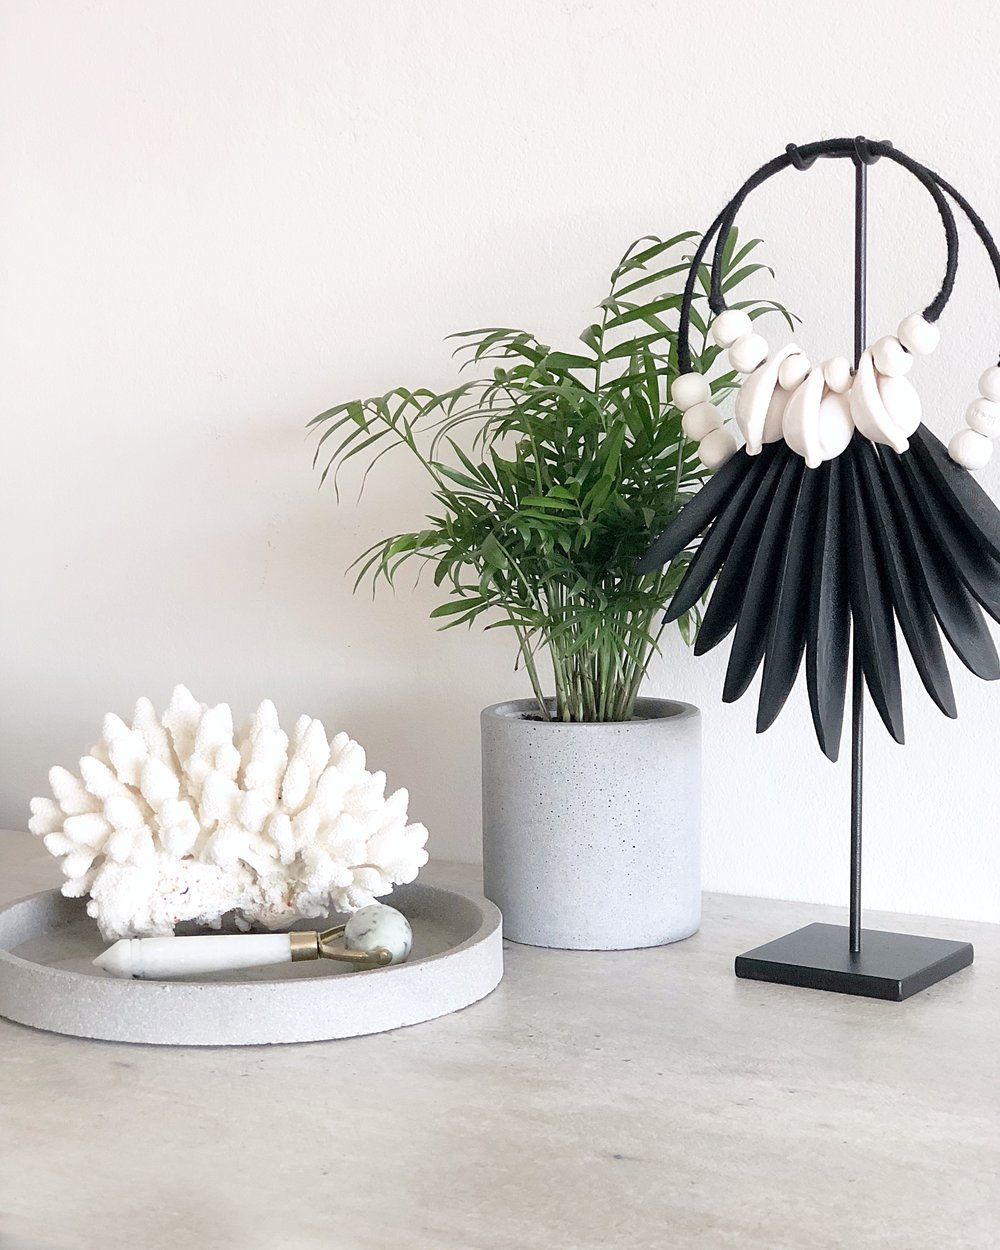 Cuttle + Cowrie in Black, Coral, Jade roller & Concrete pot + tray. Things we LOVE.